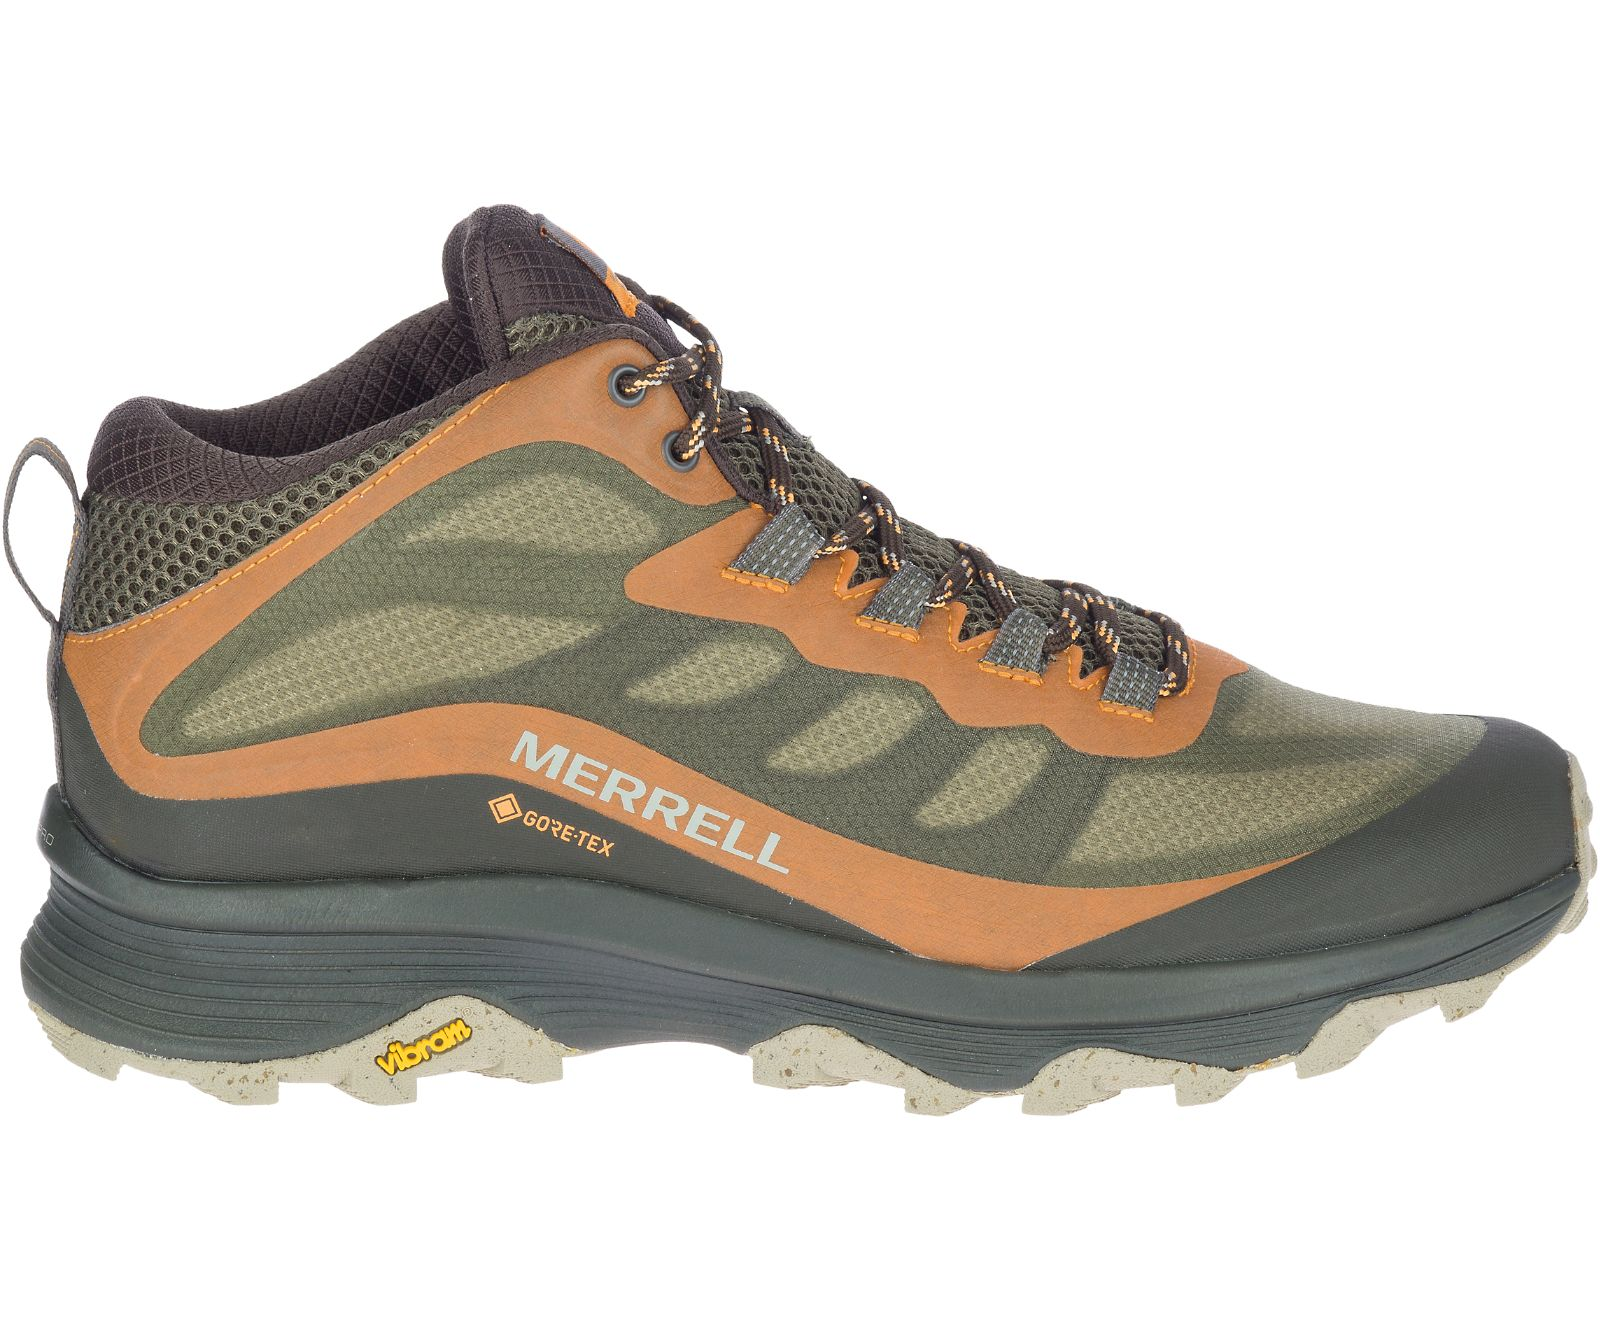 Hoka One One Speedgoat Mid Gore-Tex GTX 2 Review Shoe Hiking Trail Runner Backpacking Plush Comfort Support Fast Comfortable 3